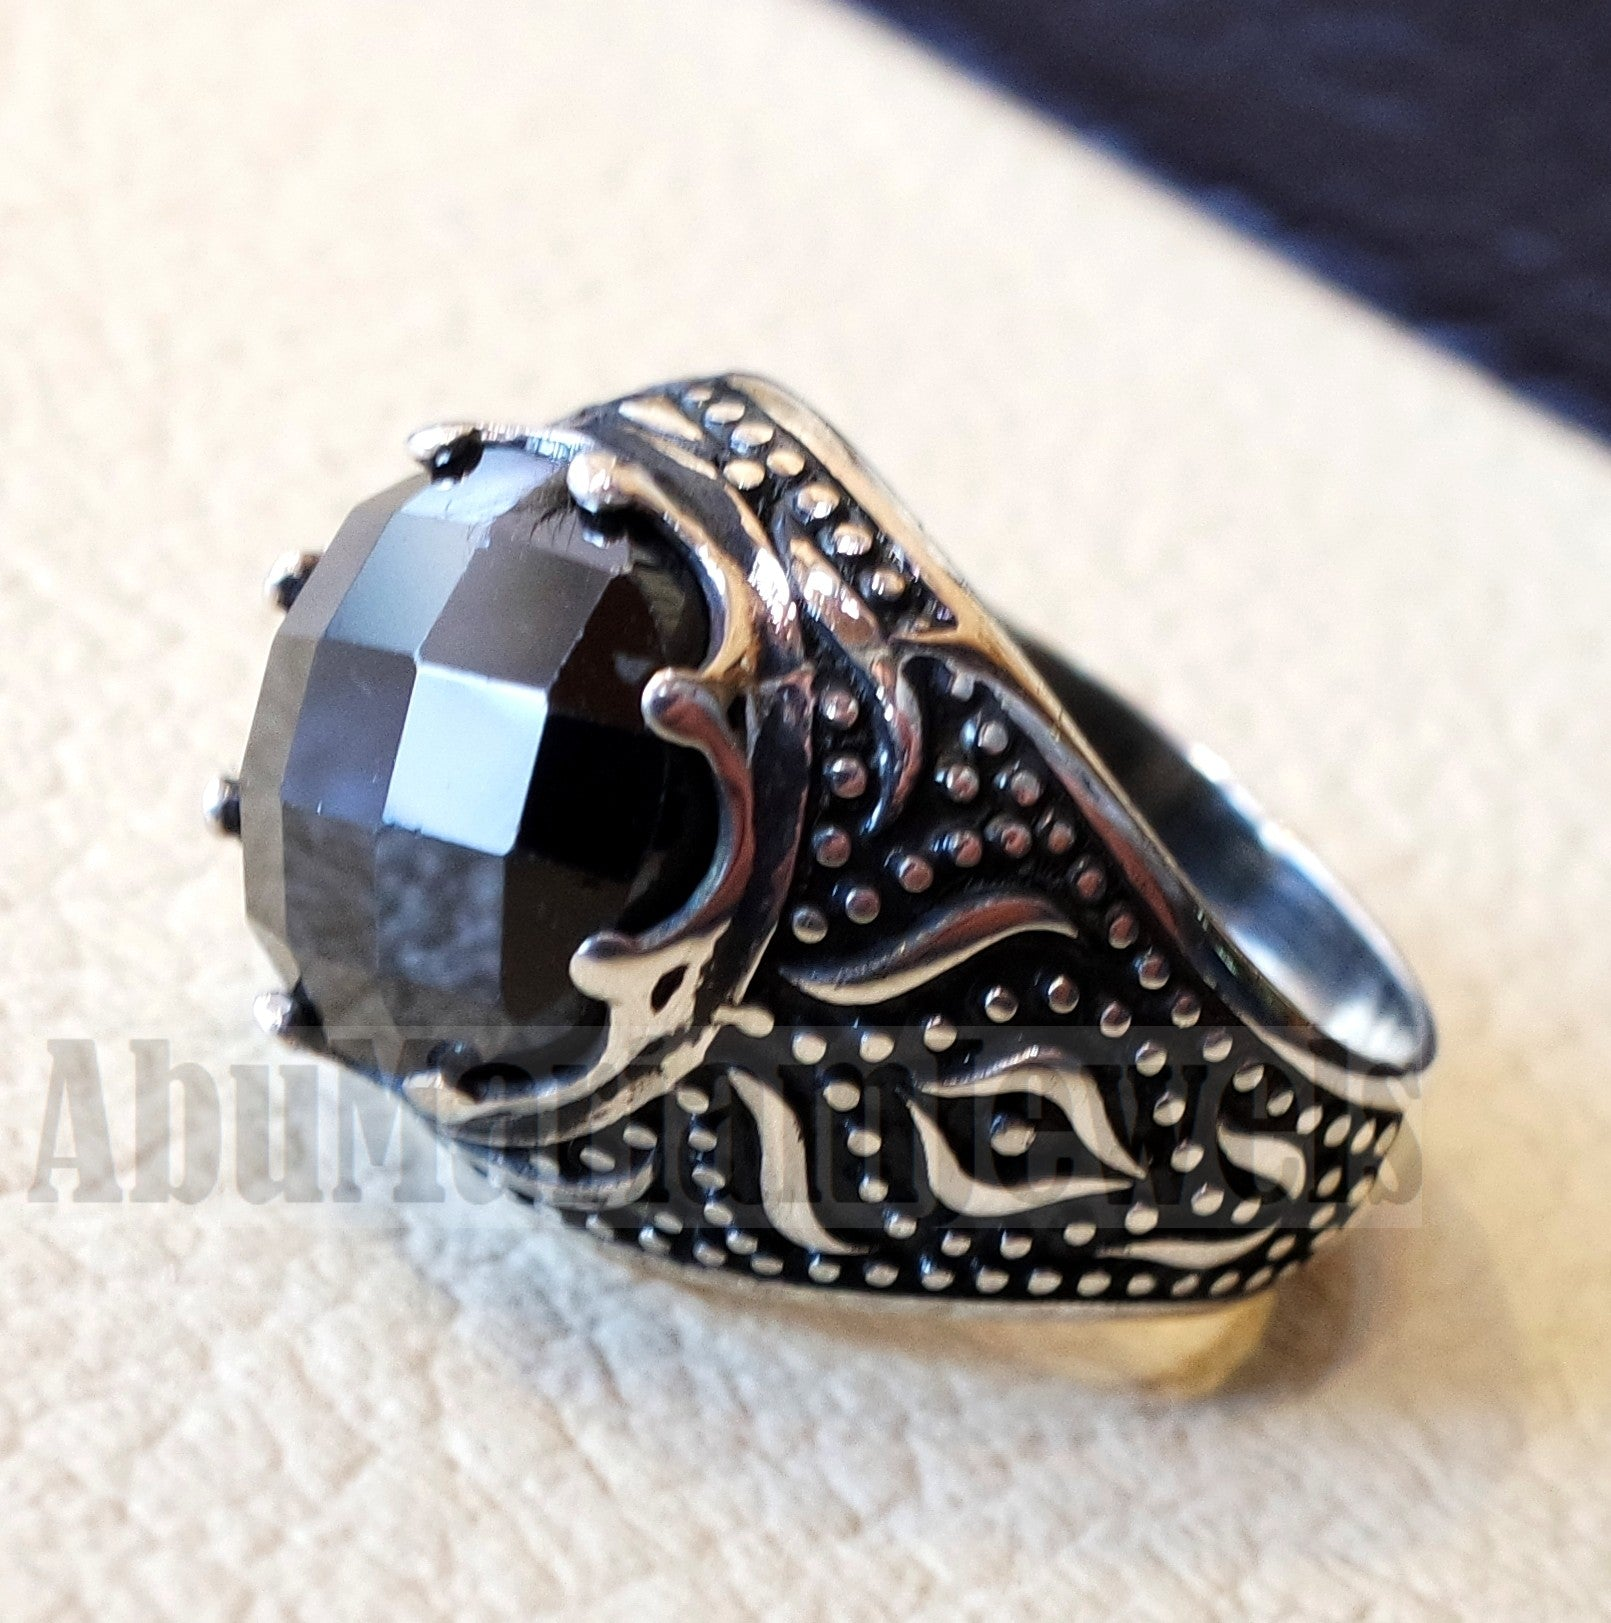 onyx round man ring sterling silver 925 black faceted stone cabochon all sizes middle eastern Arabic Turkish antique style jewelry